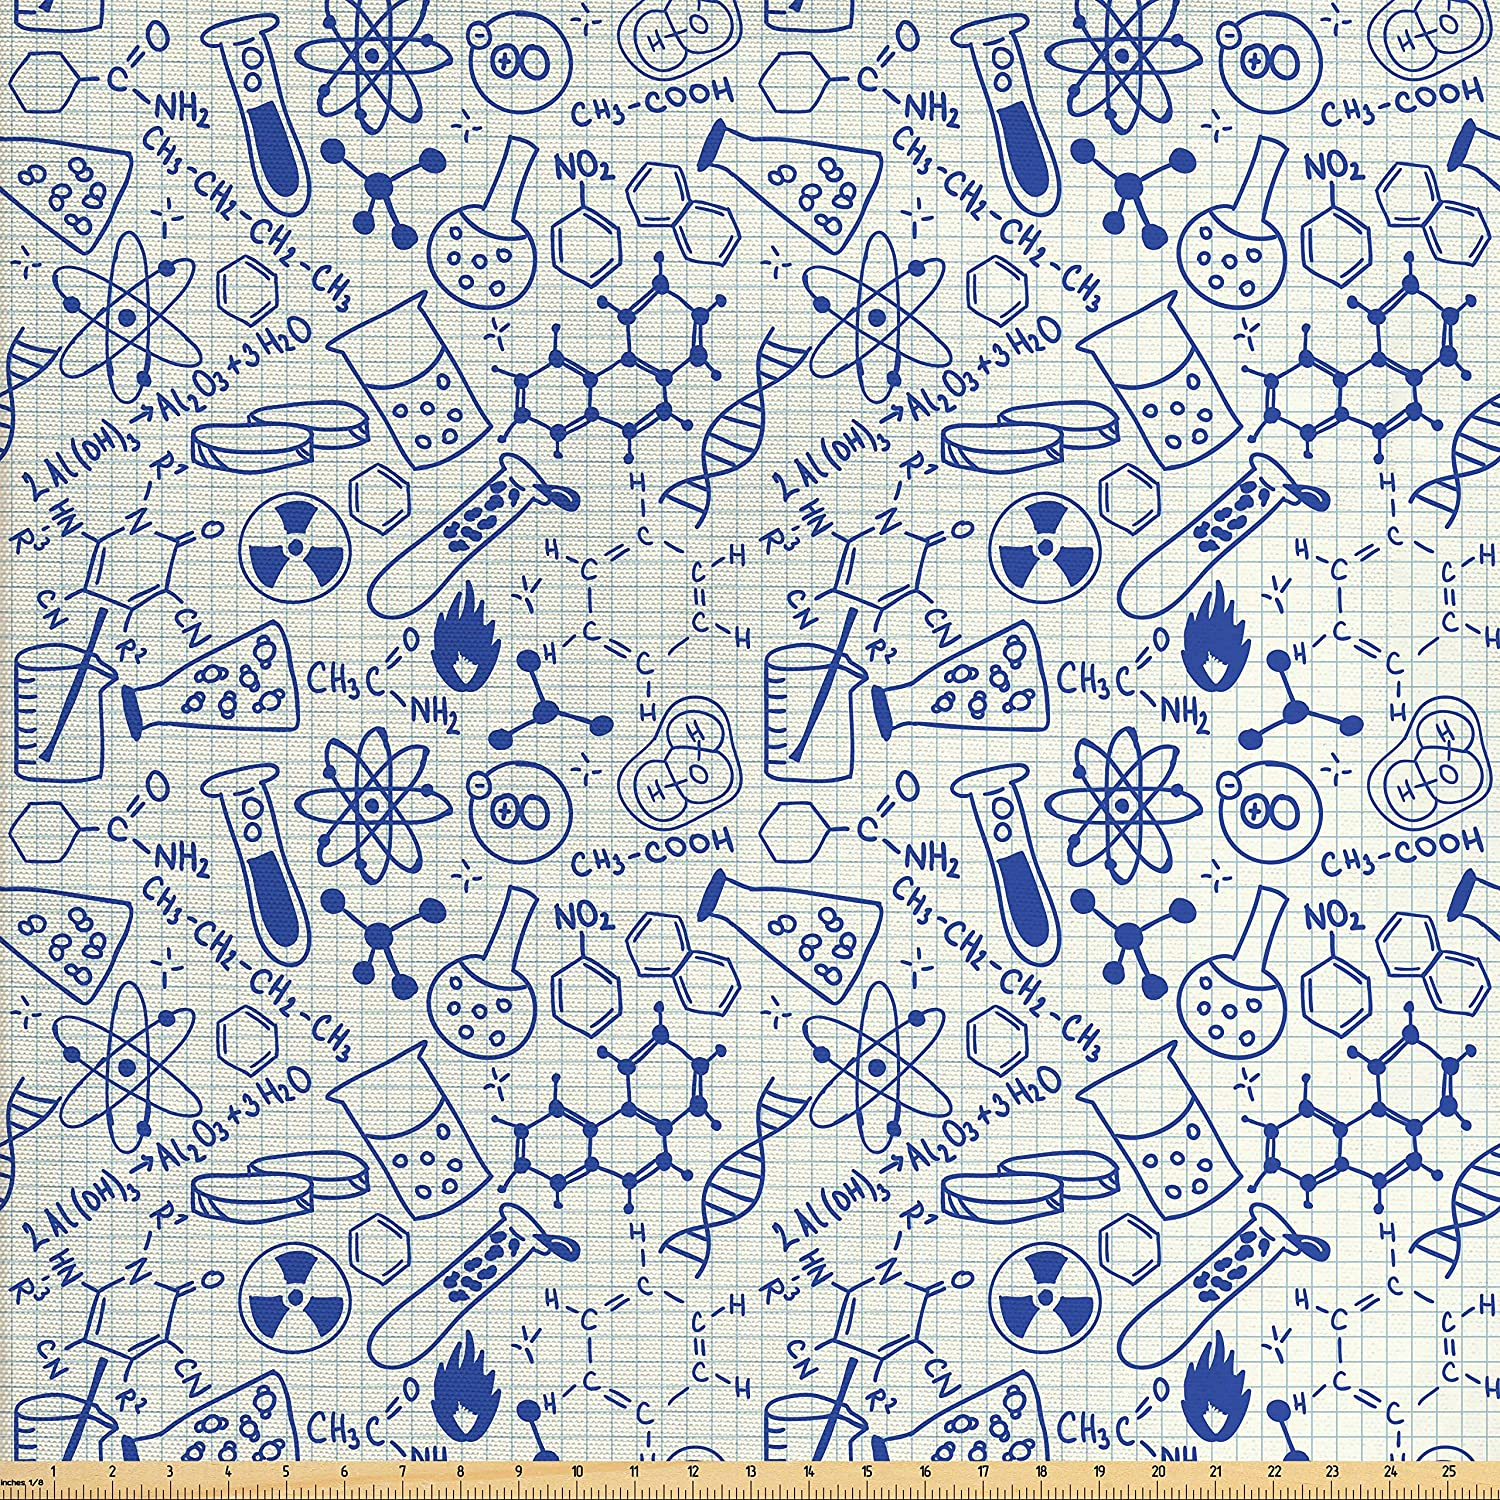 Ambesonne Children Fabric by The Yard, Science Chemistry Geometry Math Nerd Geek and Genius Themed Design Artwork, Decorative Fabric for Upholstery and Home Accents, Blue and Ivory